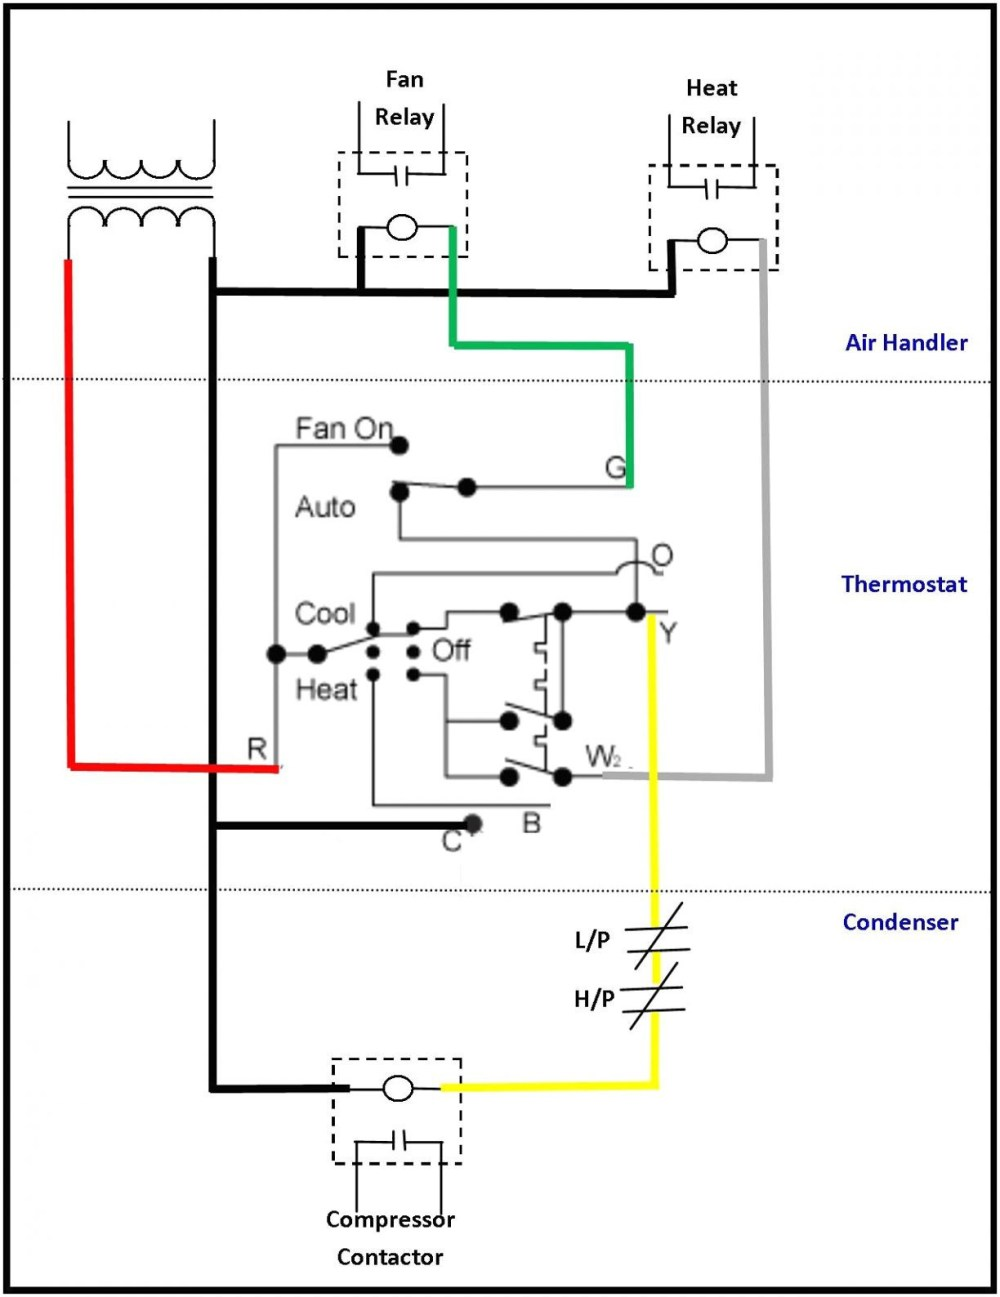 medium resolution of contactor wiring diagram ac unit download wiring diagram for ac unit thermostat valid wiring a